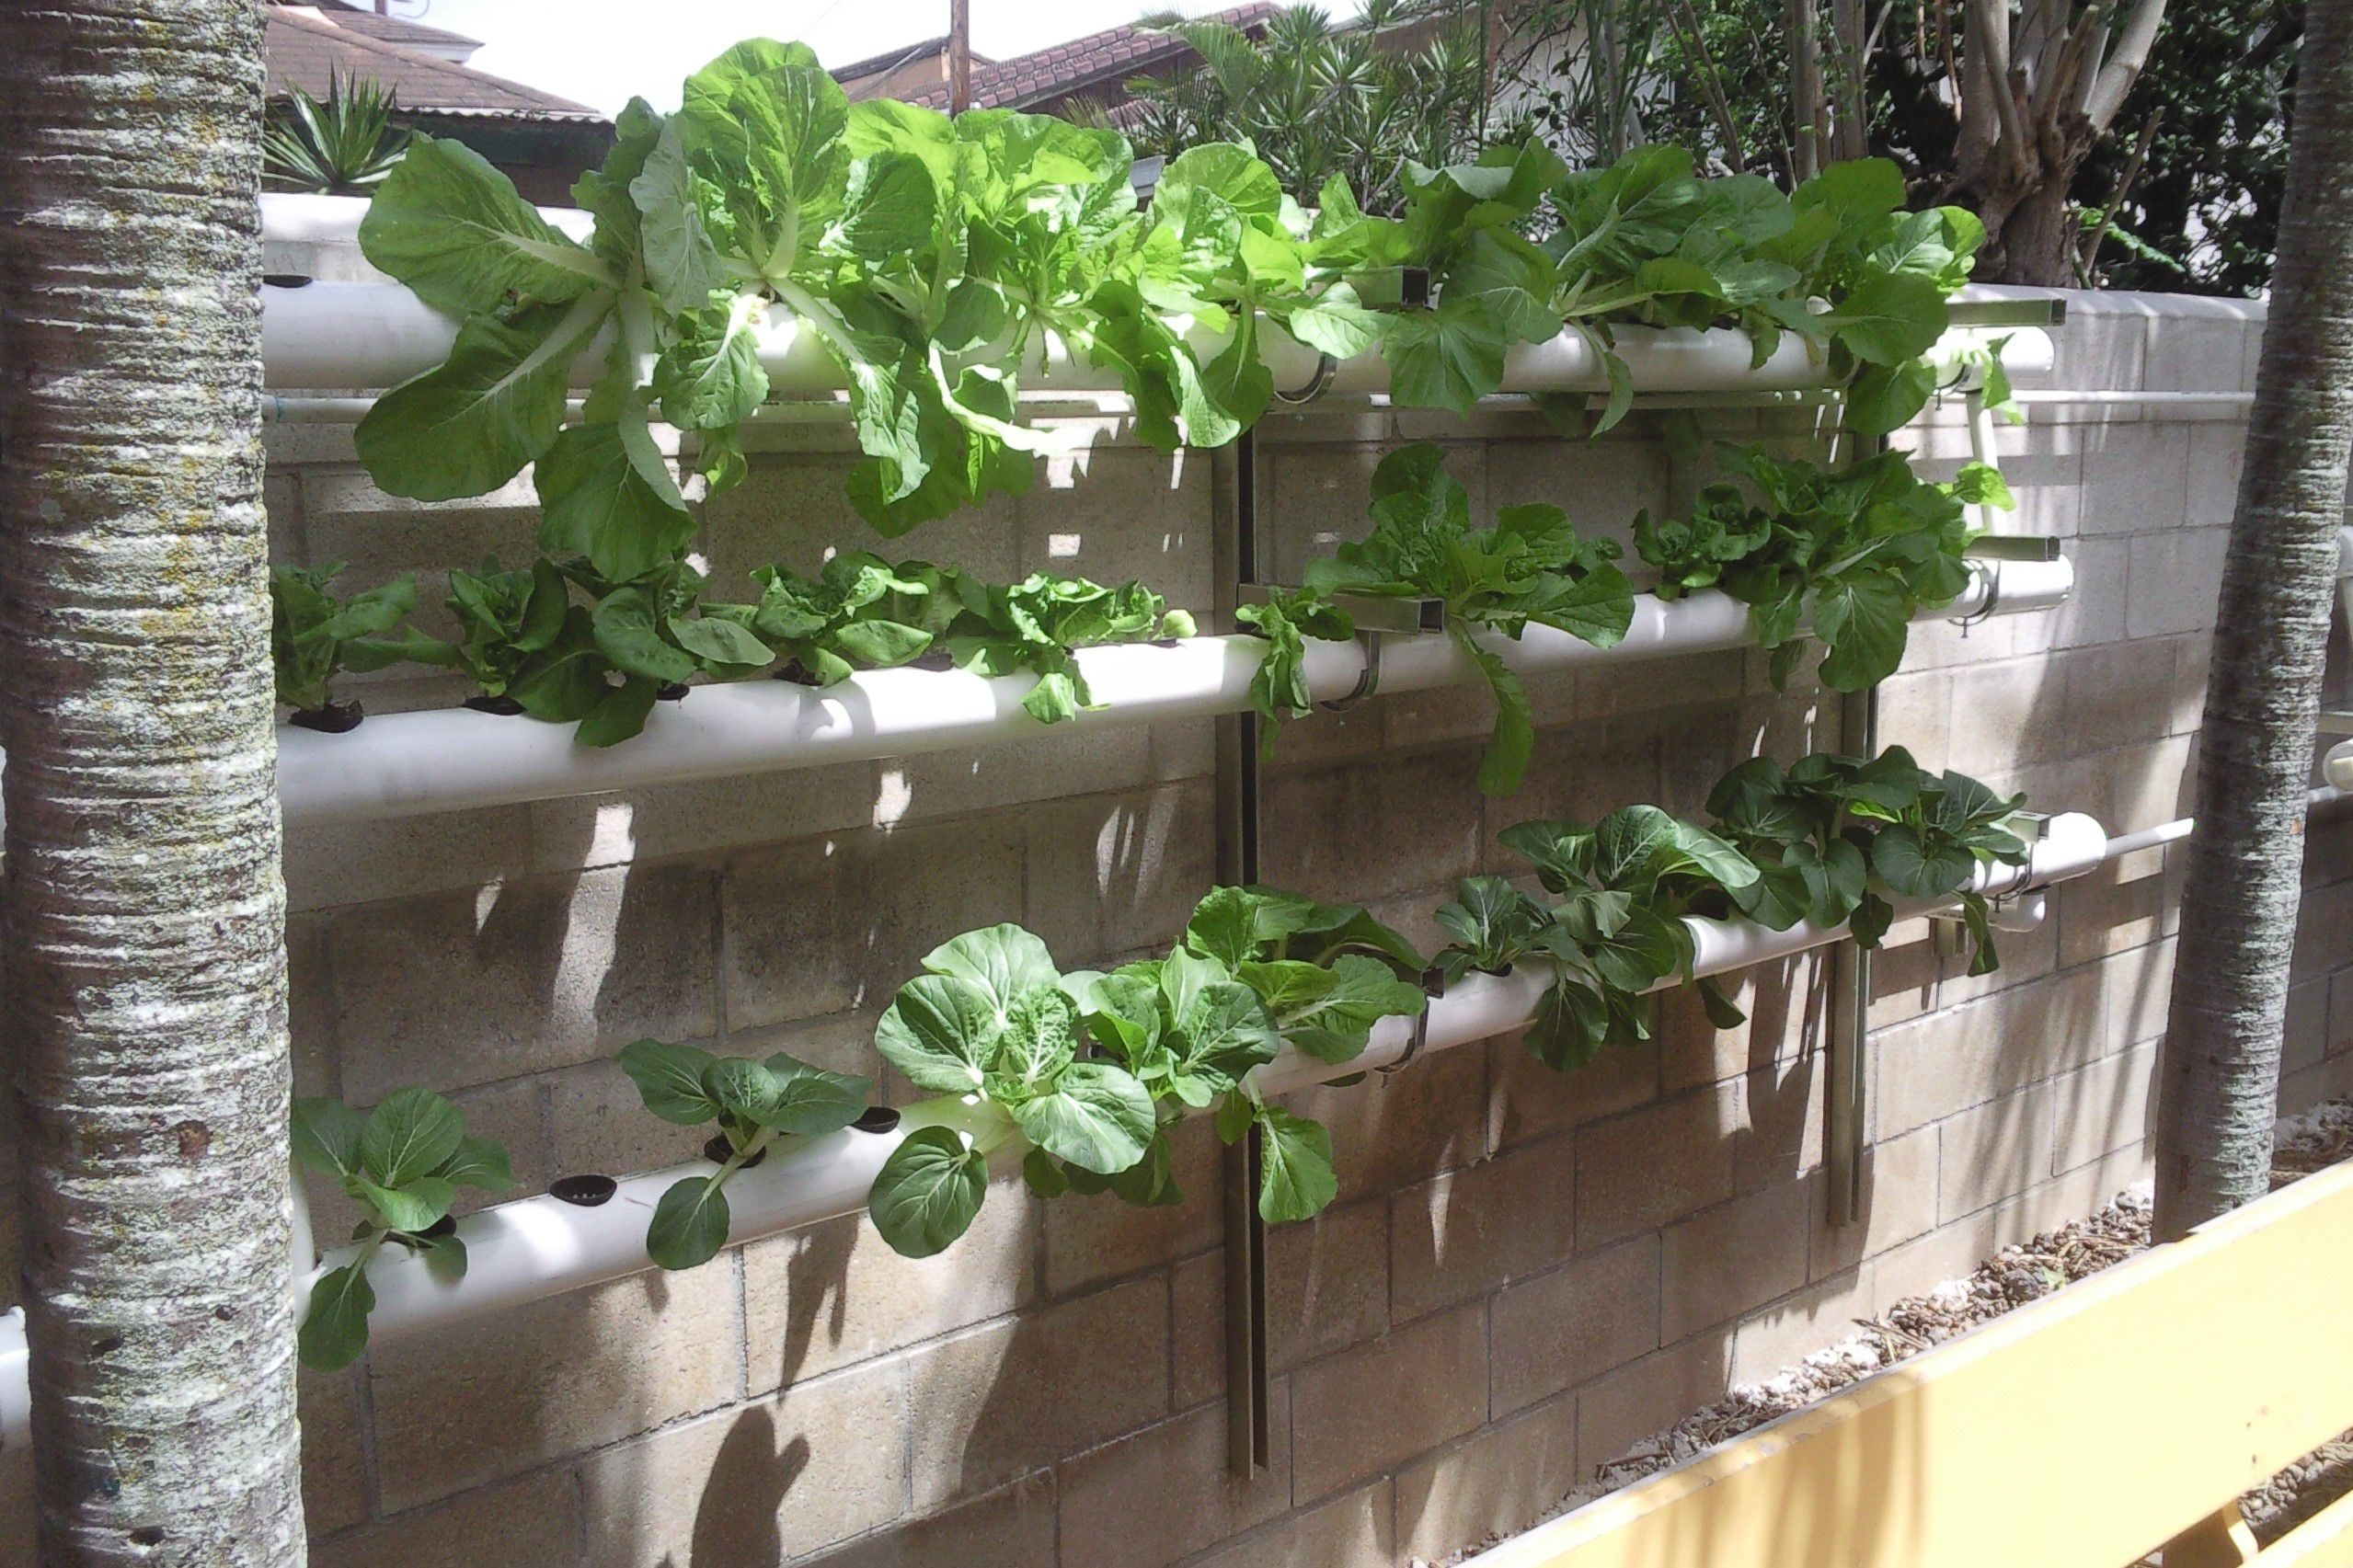 12 Plug And Play Home Hydroponics Systems